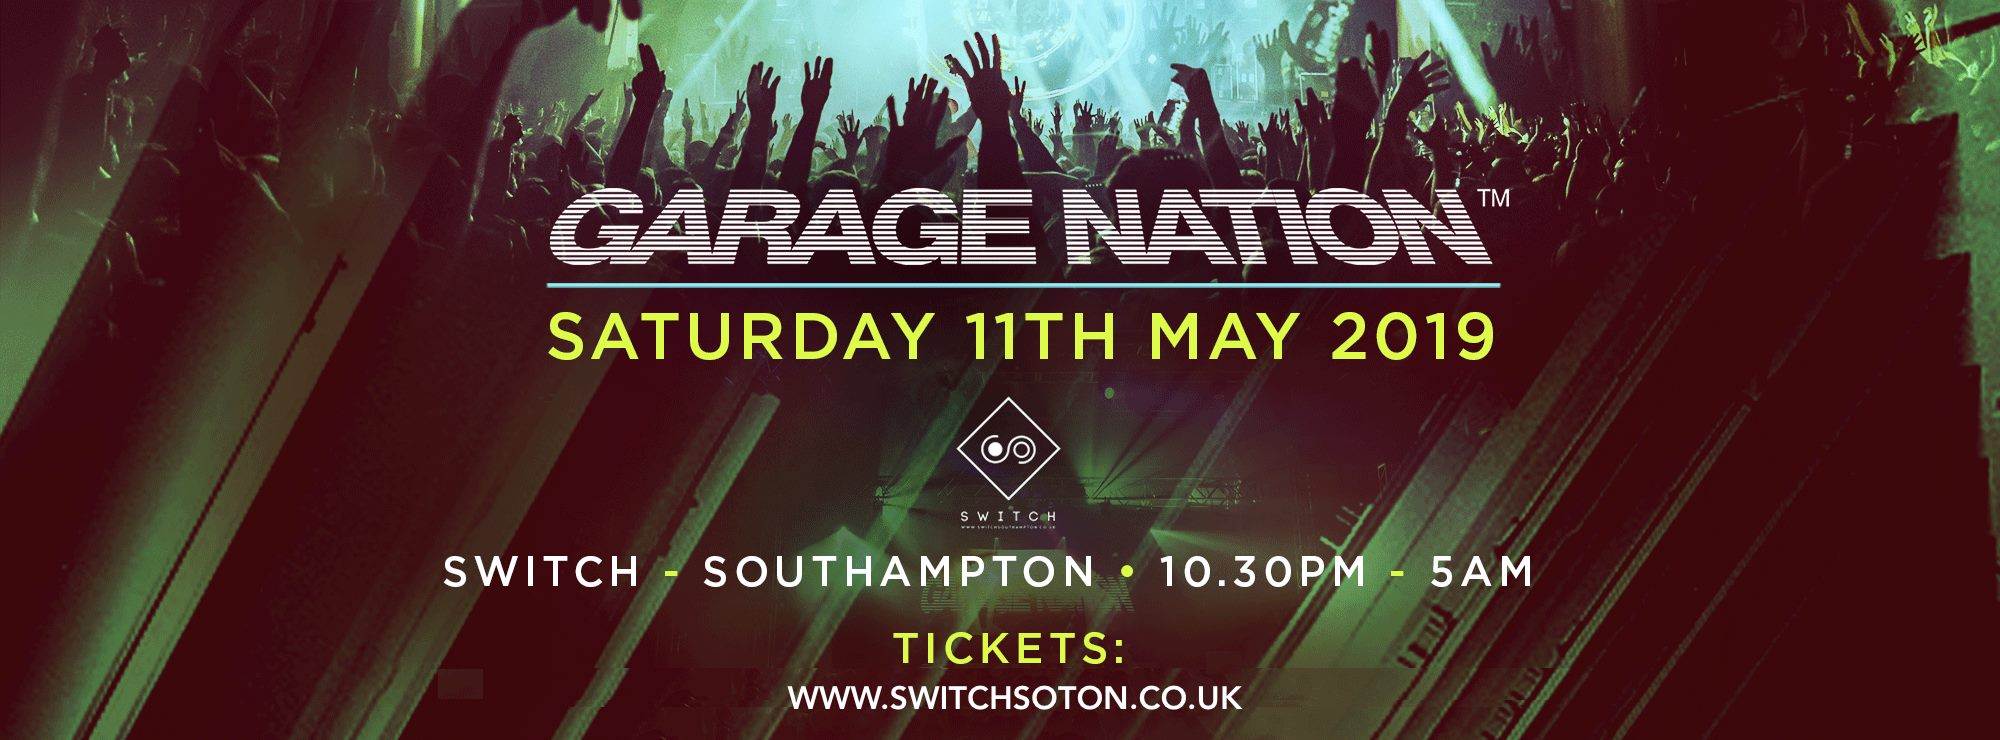 Garage Nation Southampton • Saturday 11th May